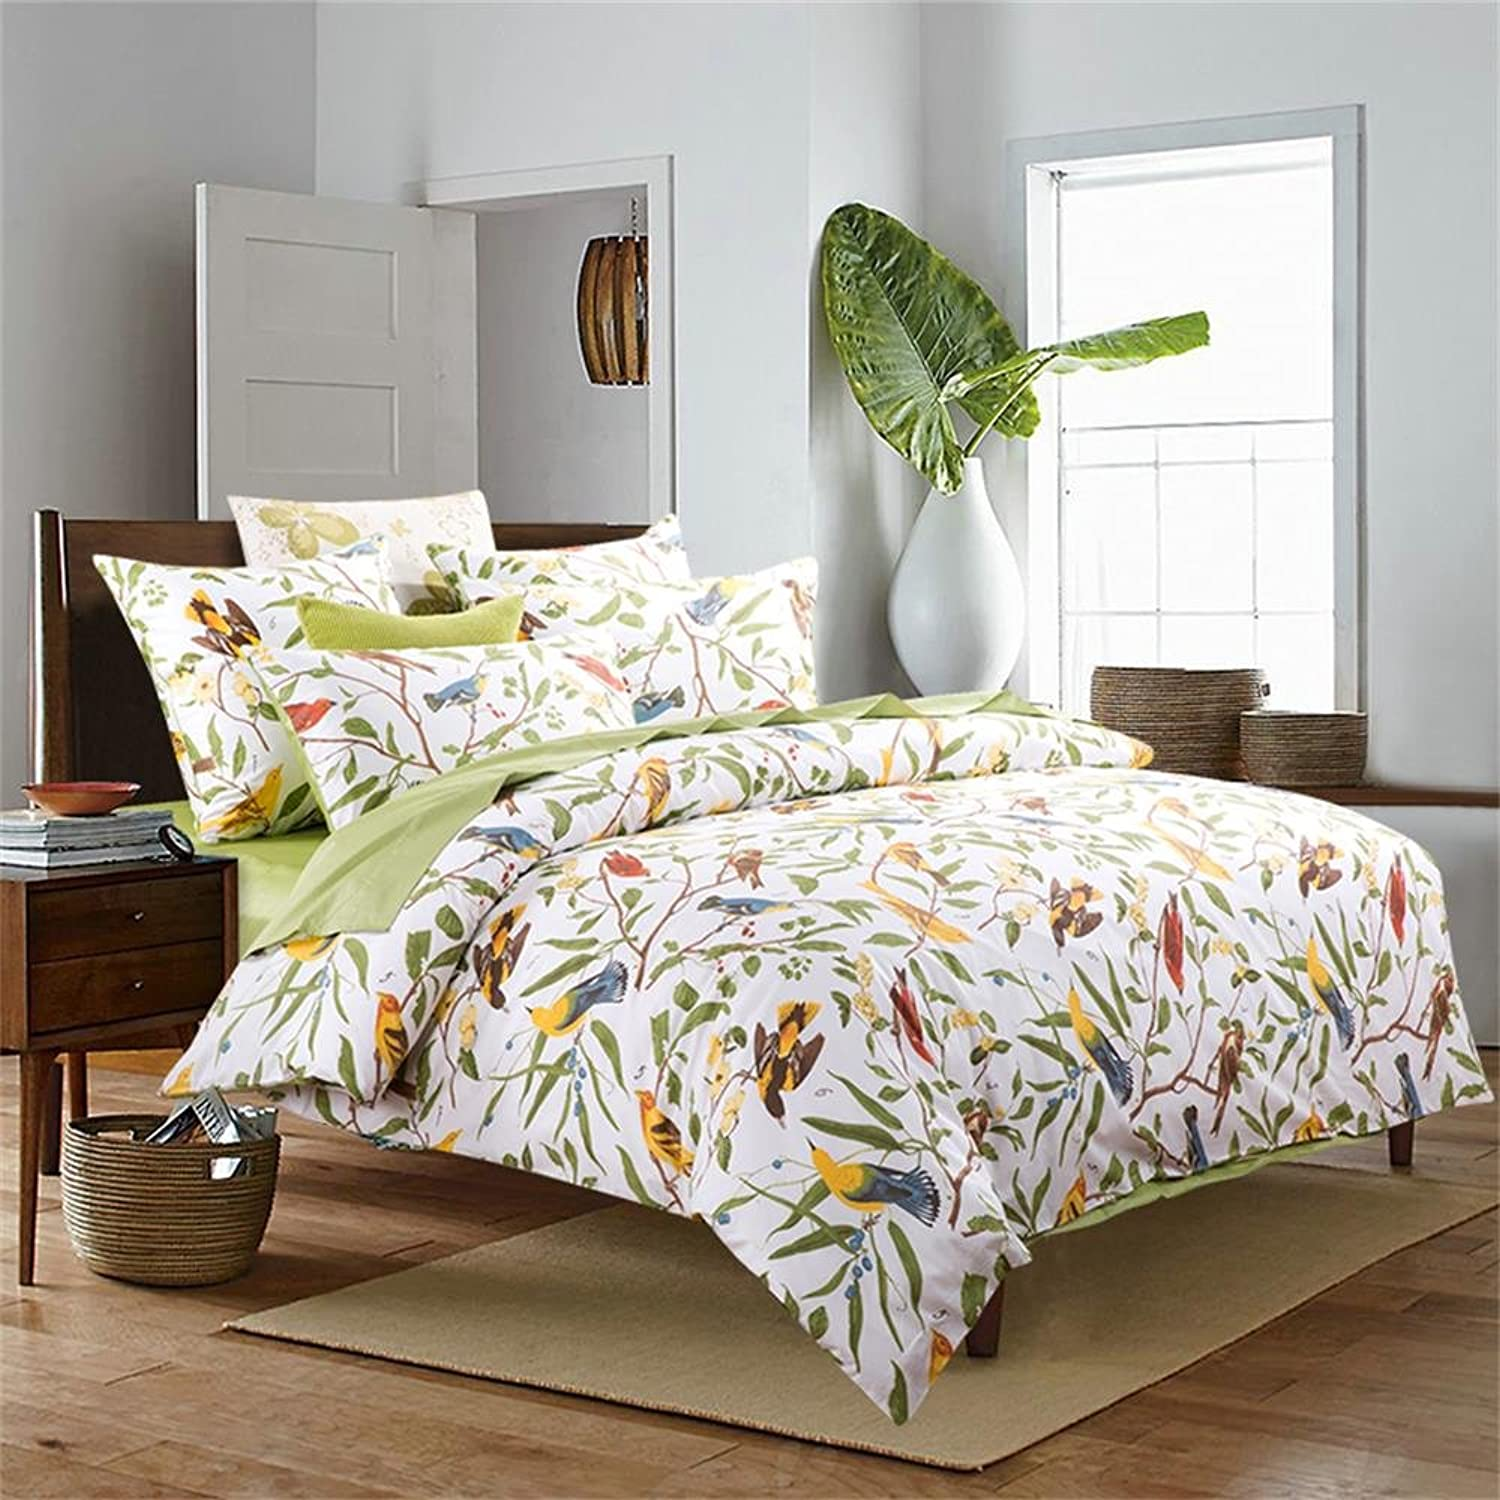 Brandream Beautiful Garden Luxury 3 Piece Duvet Cover Set Island Tree Branch and Birds Multicolord Floral Pattern 100-percent Brushed Cotton Twill (Full,Green)